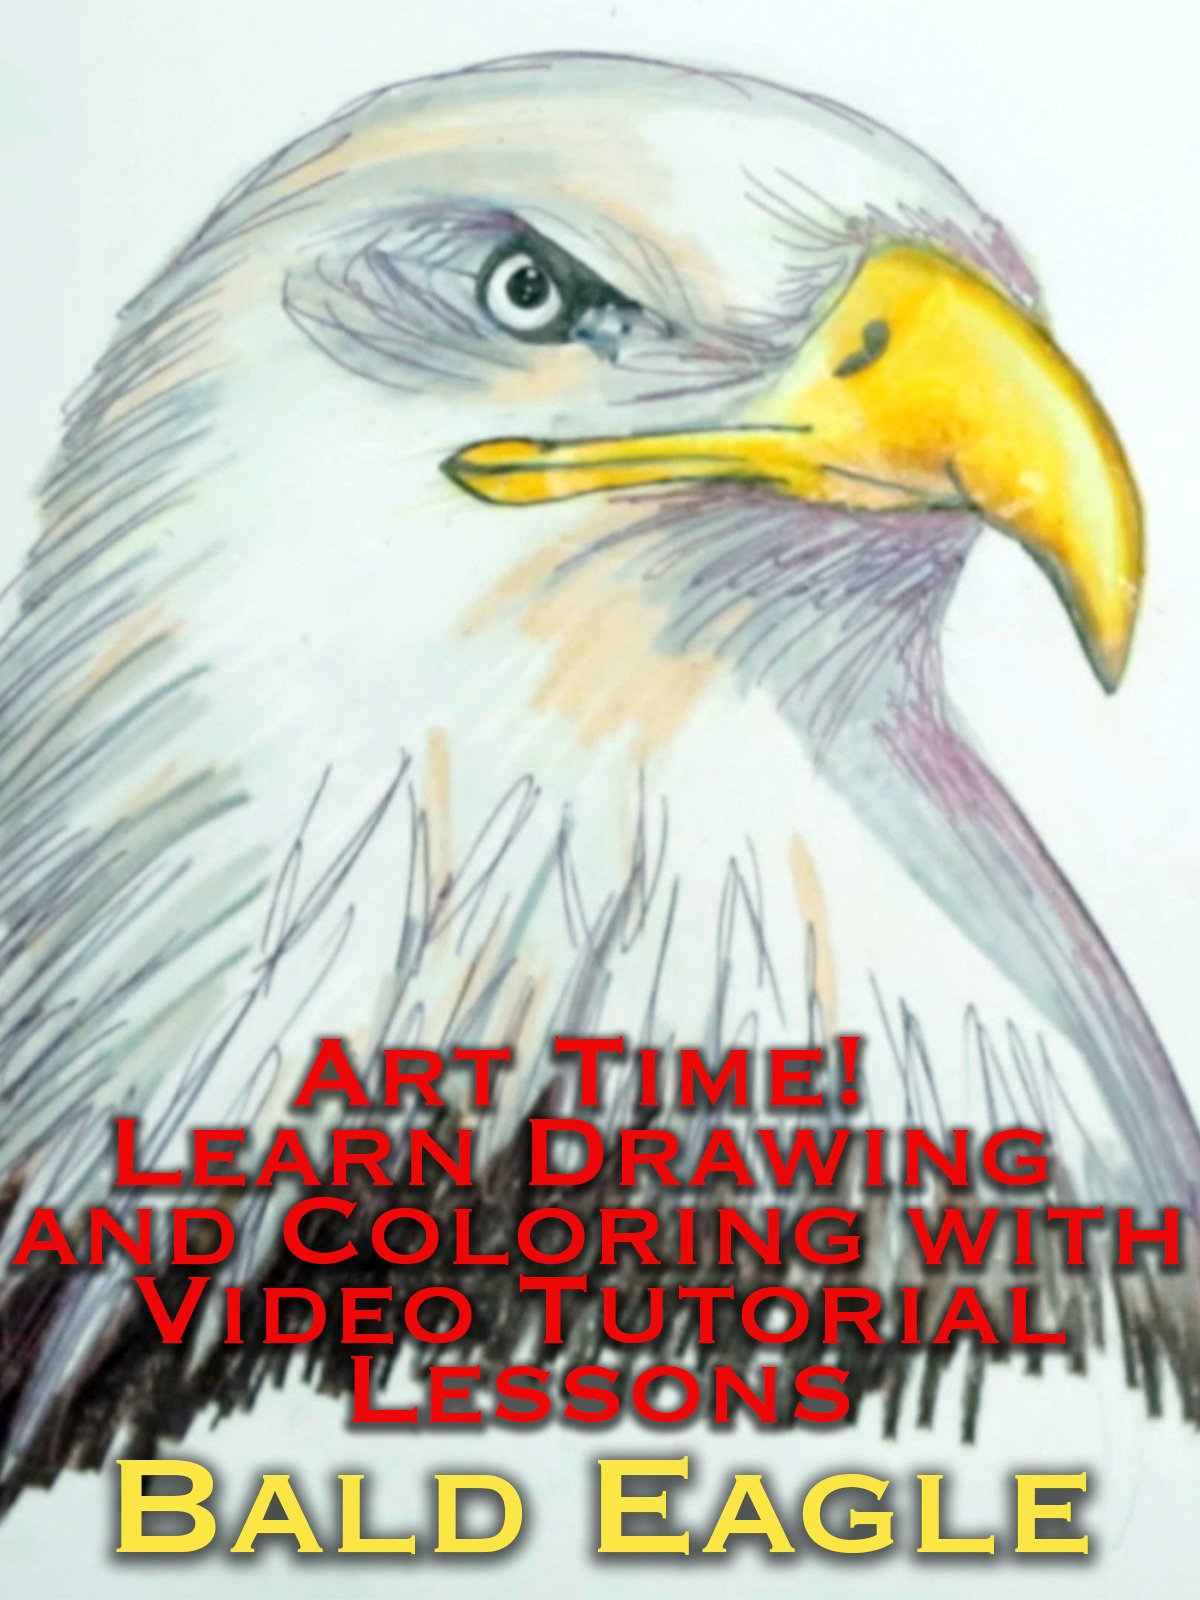 Art Time! Learn Drawing and Coloring with Video Tutorial Lessons Bald Eagle